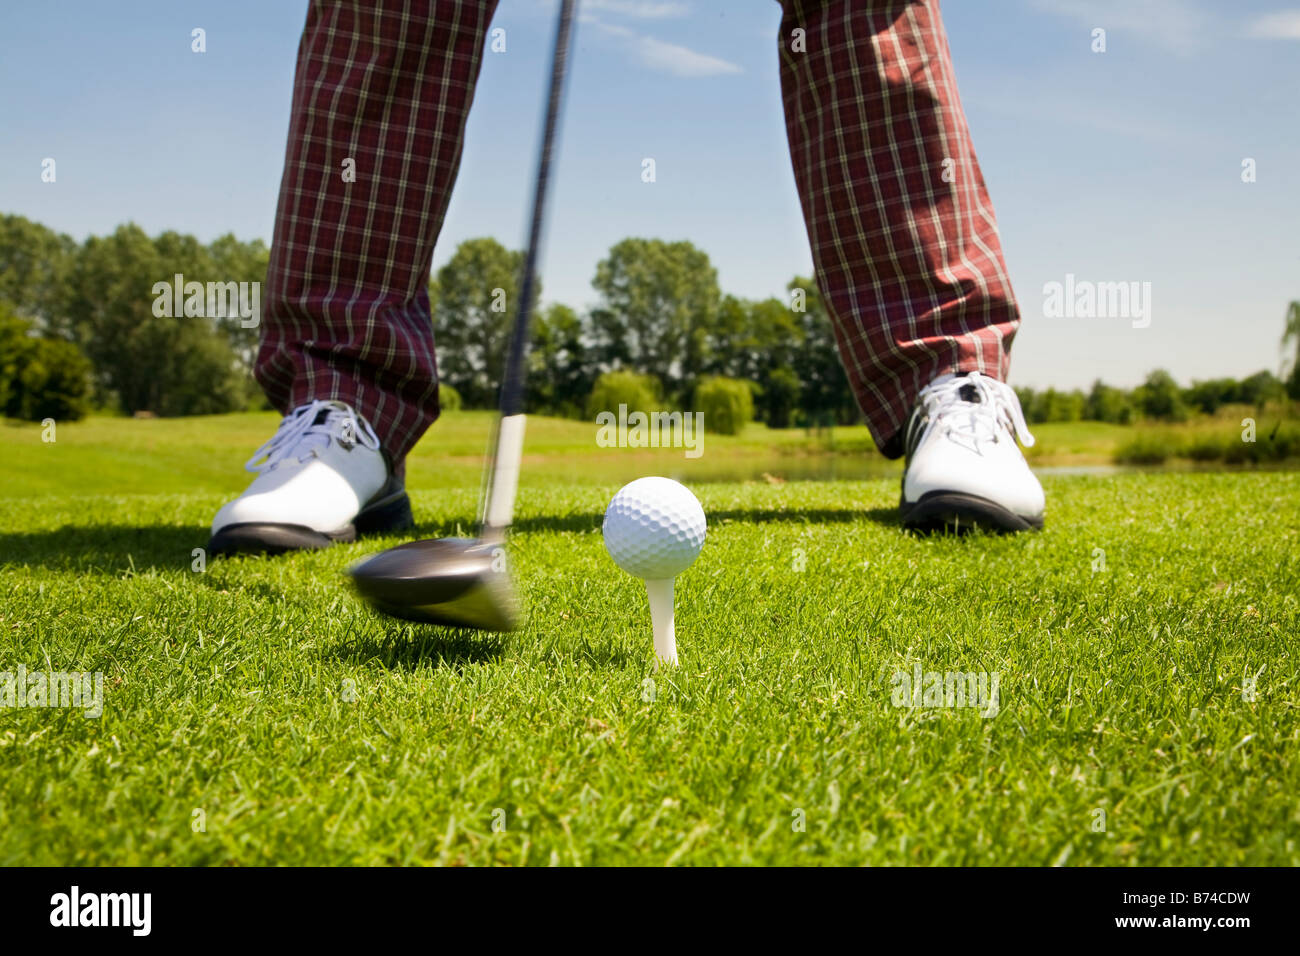 golfer concentrating on the 18th hole - Stock Image